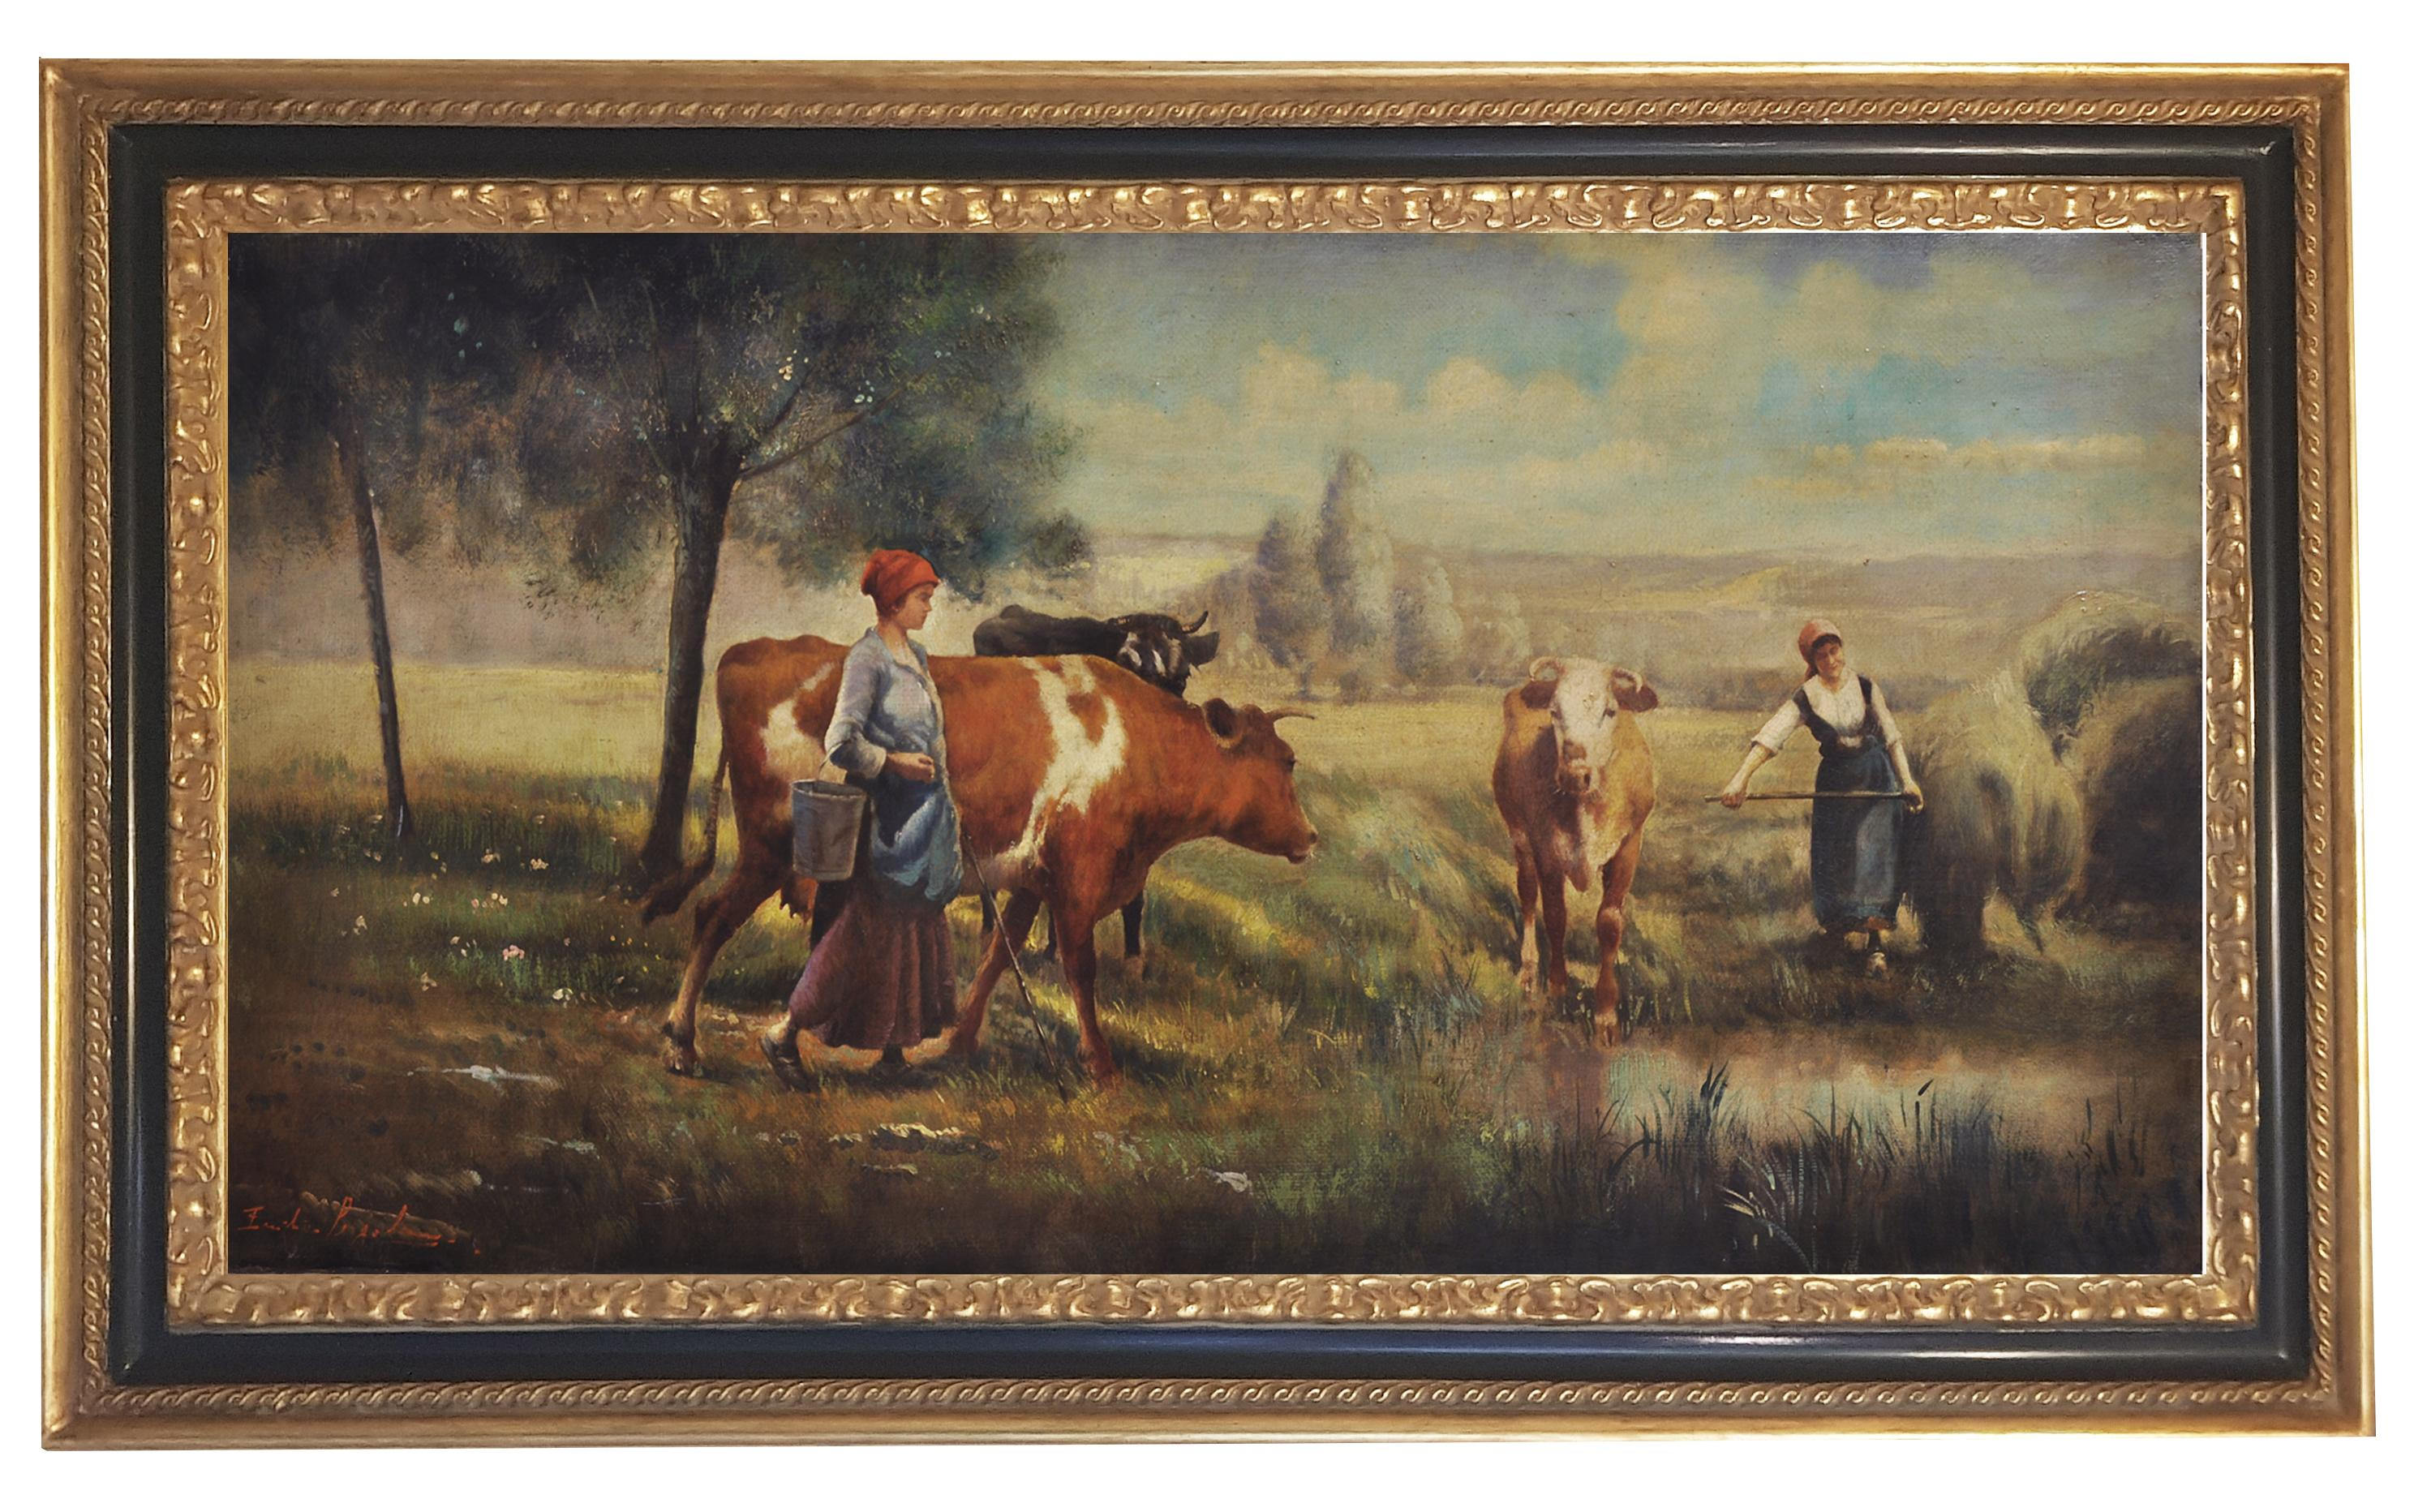 COUNTRY LANDSCAPE - French School -Italian Oil on Canvas Painting